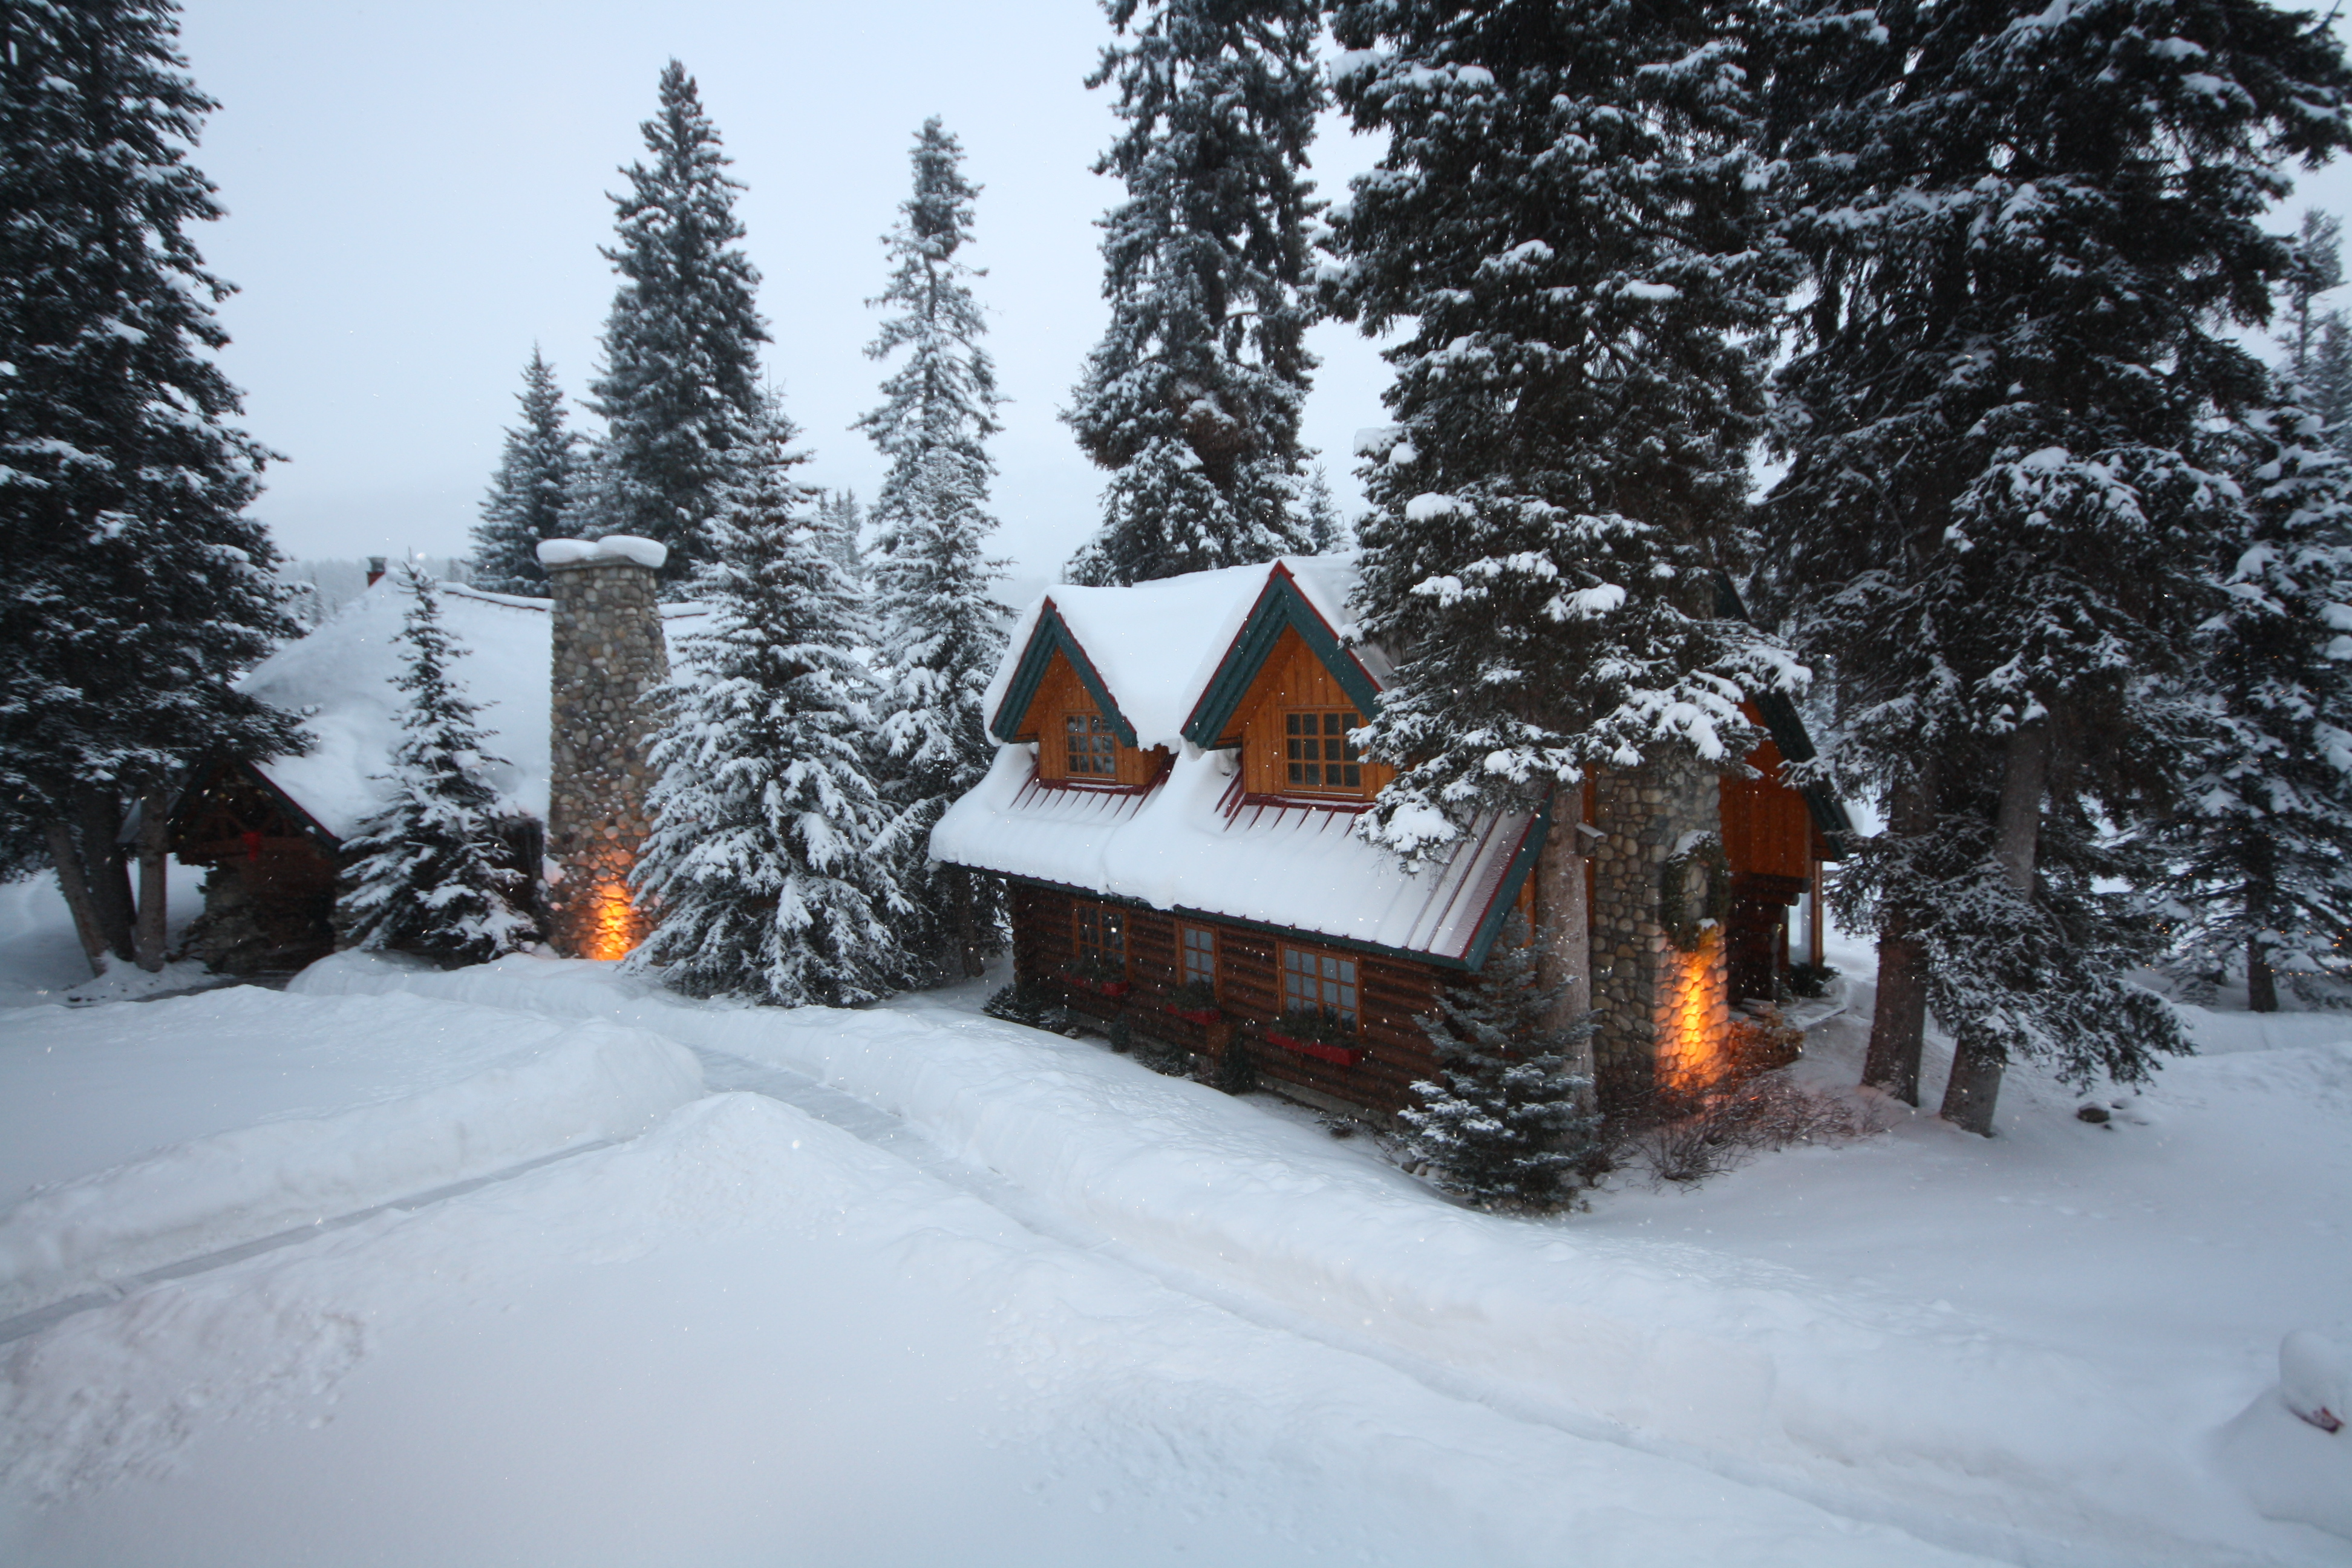 The Post Hotel and Spa in Lake Louise has gorgeous cabins that are just made for a cozy night by the fire. JIM BYERS PHOTO